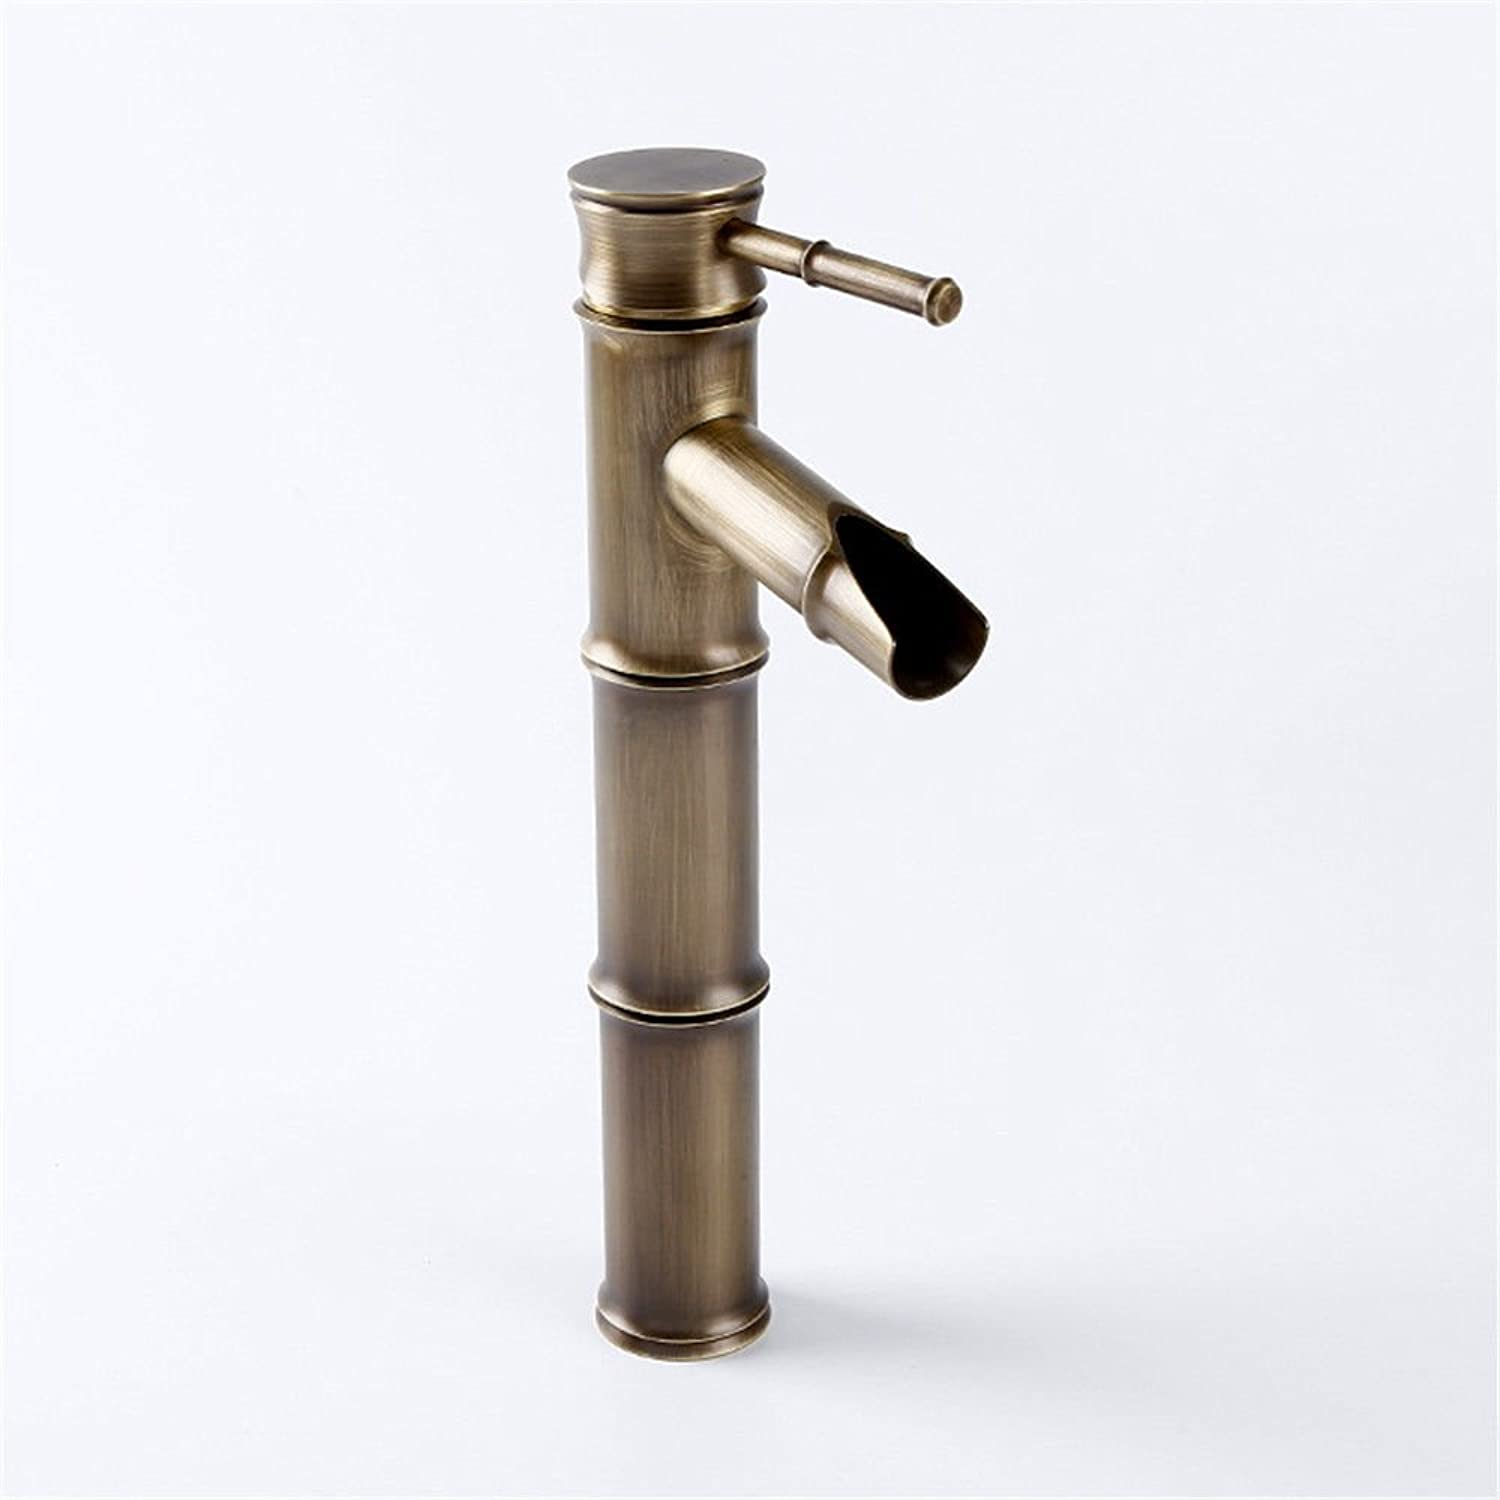 ETERNAL QUALITY Bathroom Sink Basin Tap Brass Mixer Tap Washroom Mixer Faucet Double-tap water-taps for the basin of hot and cold washing basin faucet single on-the-water